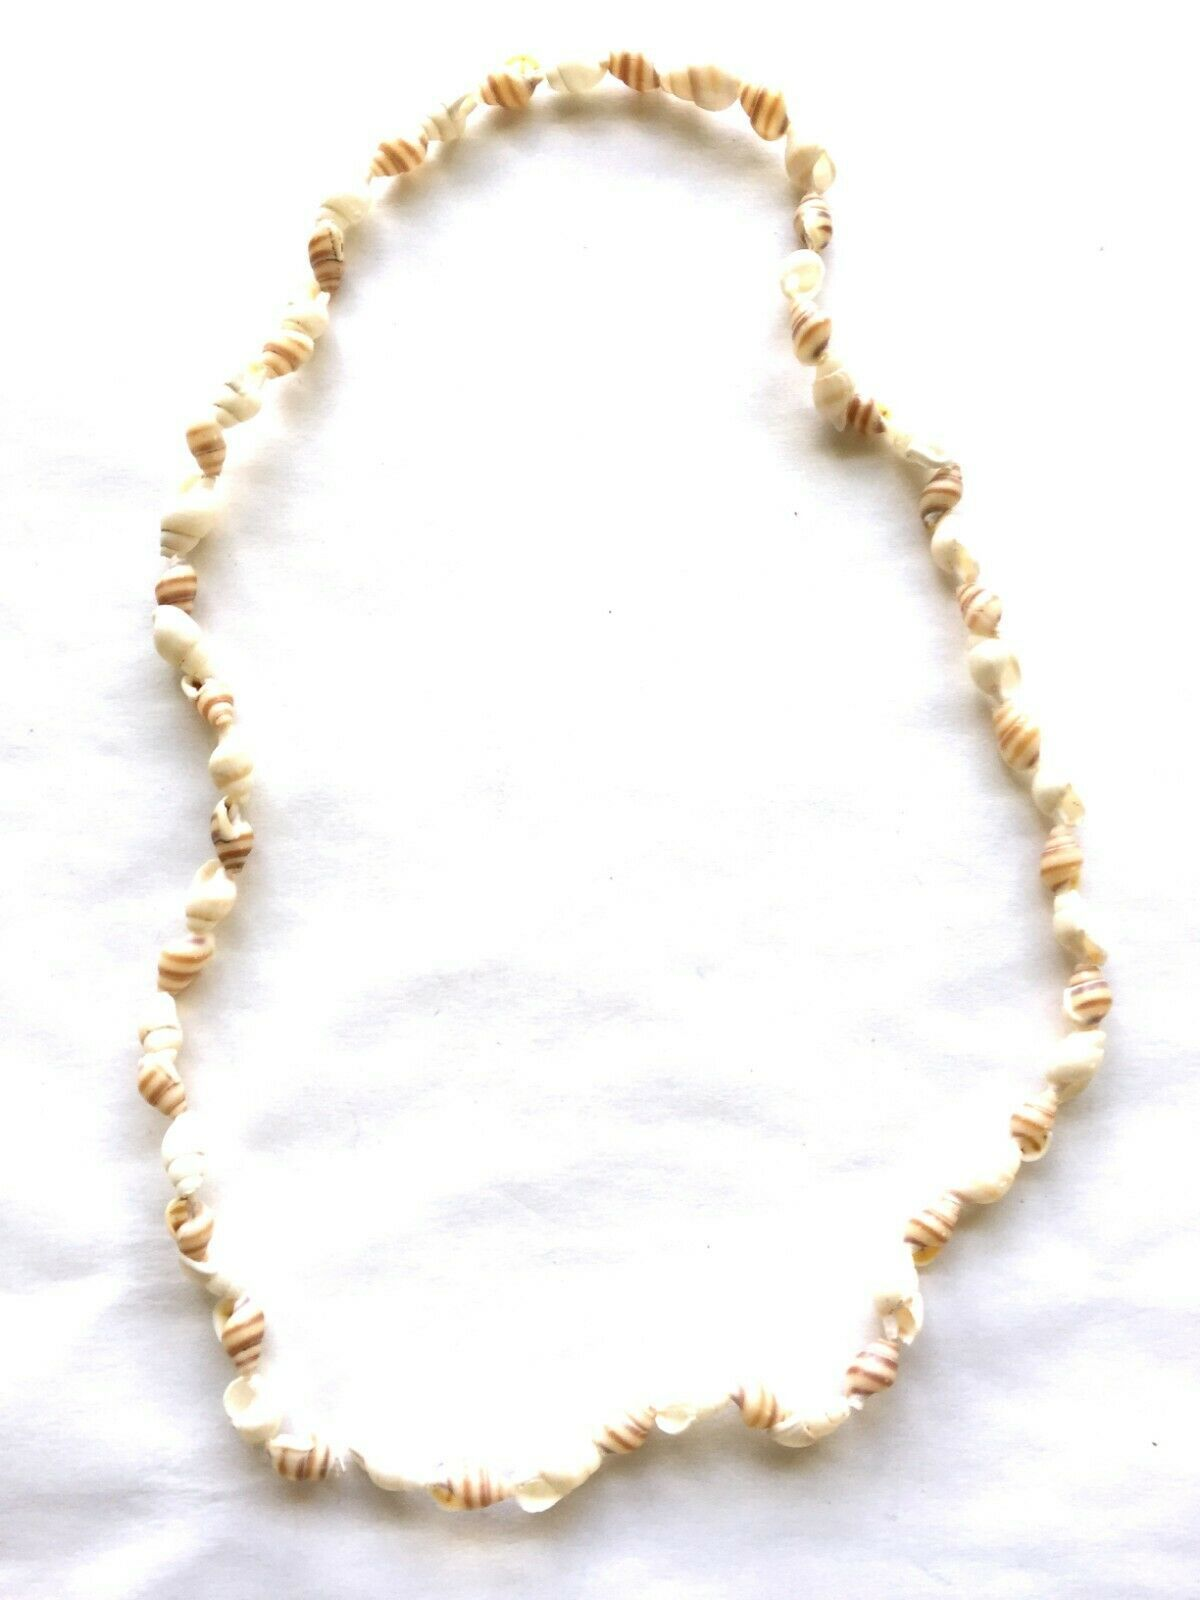 Sea Shell Necklace 22 inches No Clasp